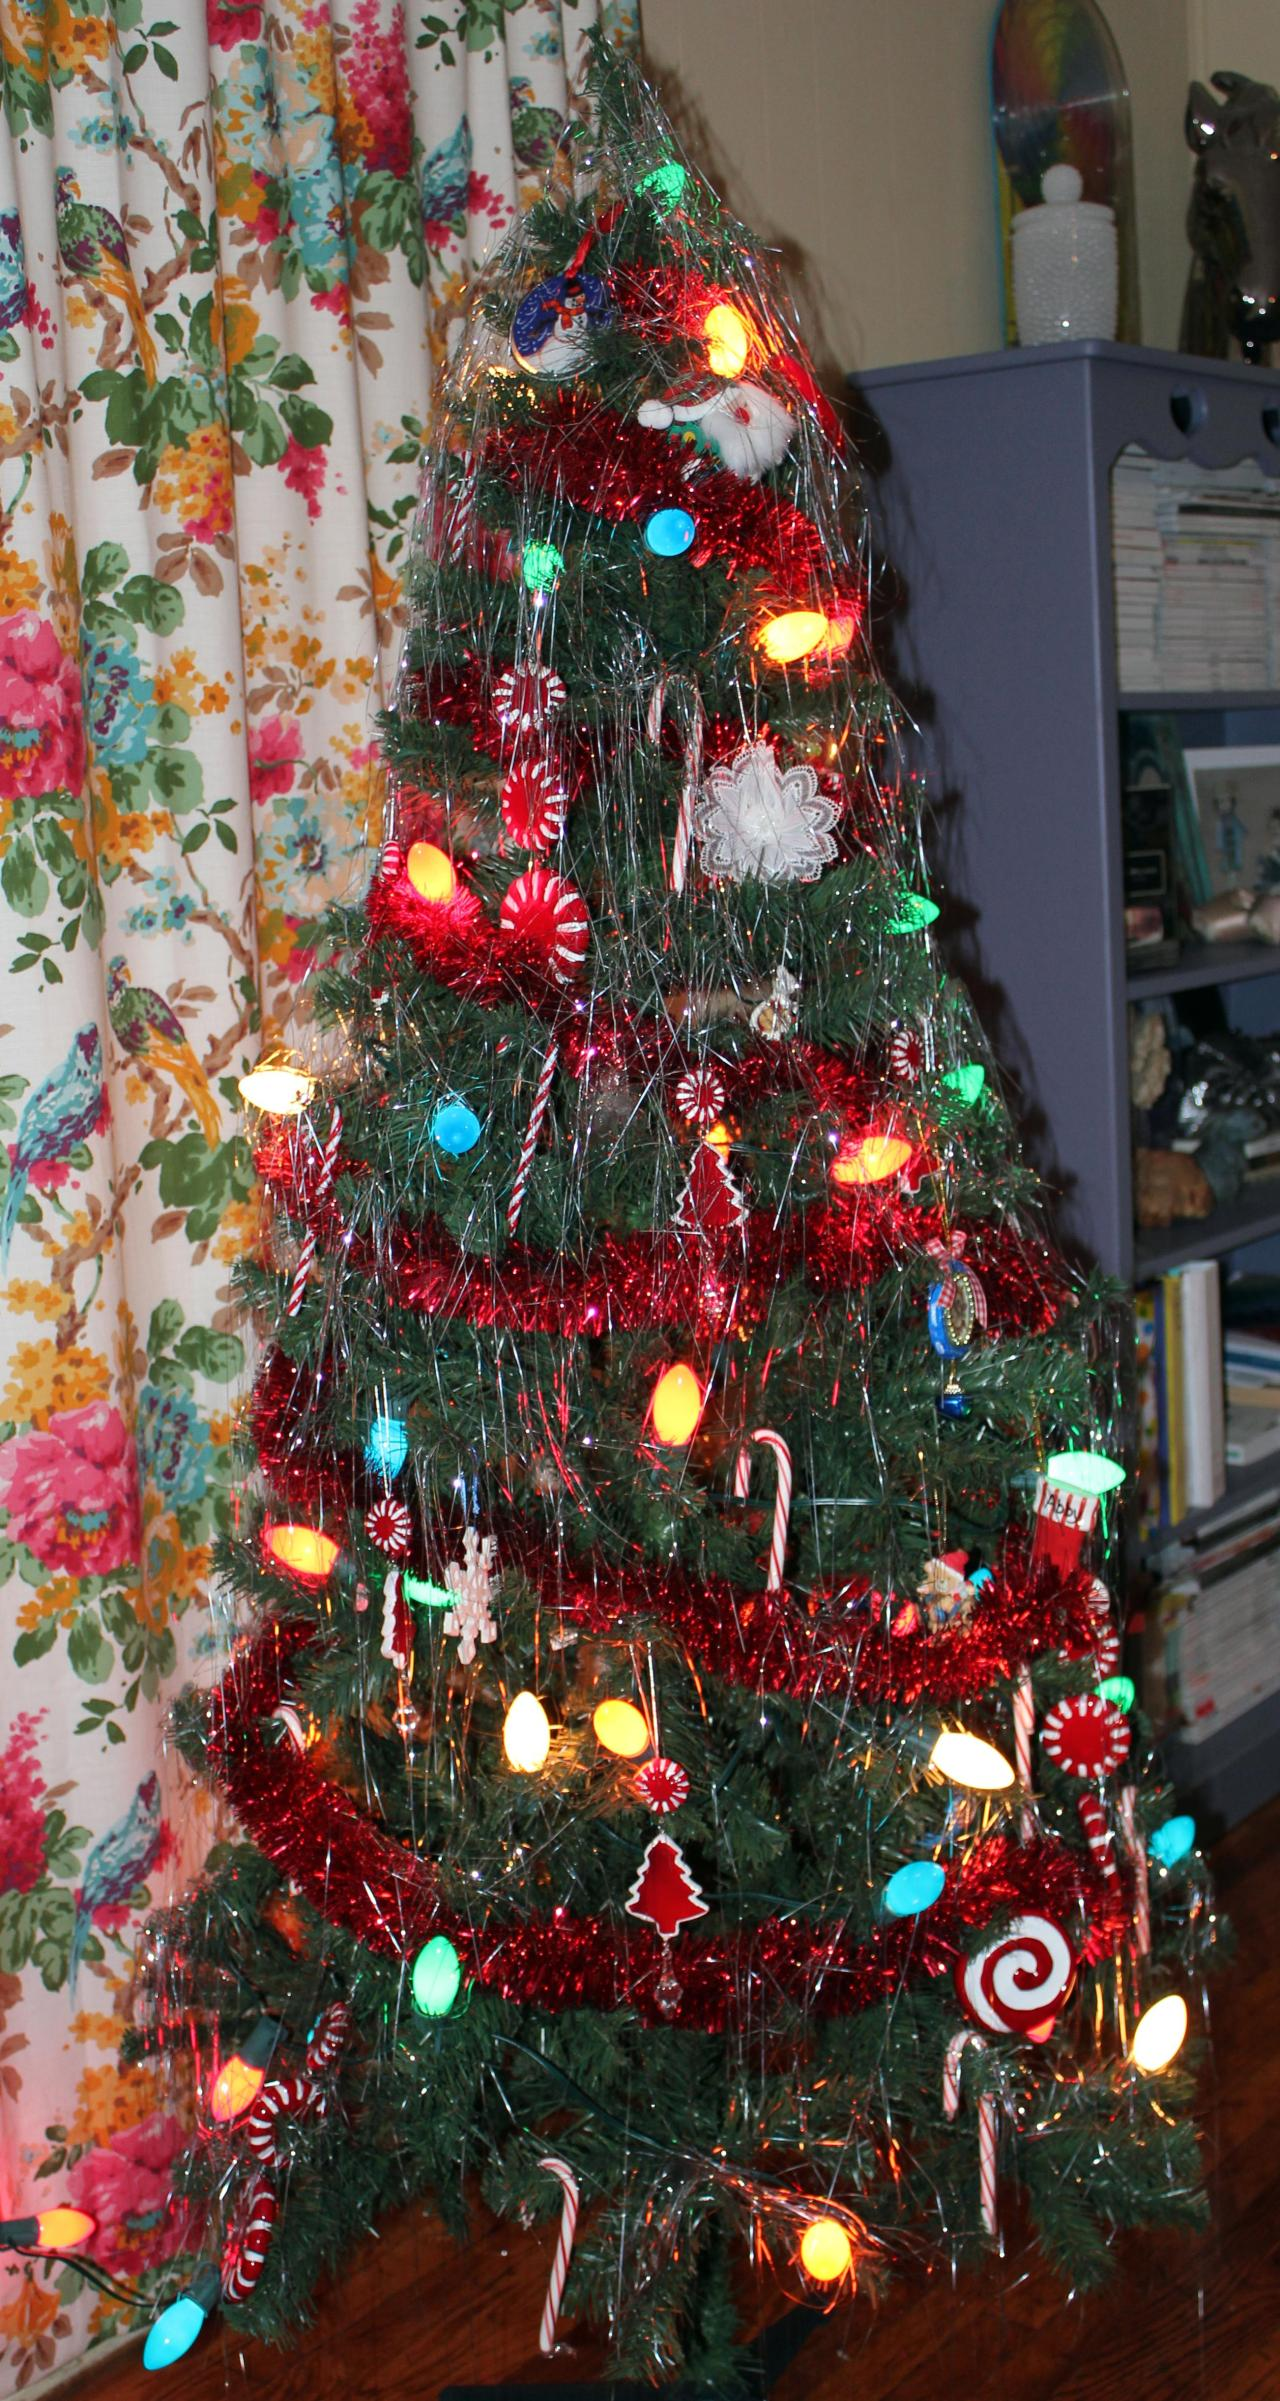 My purposefully-tacky Christmas tree *wink*